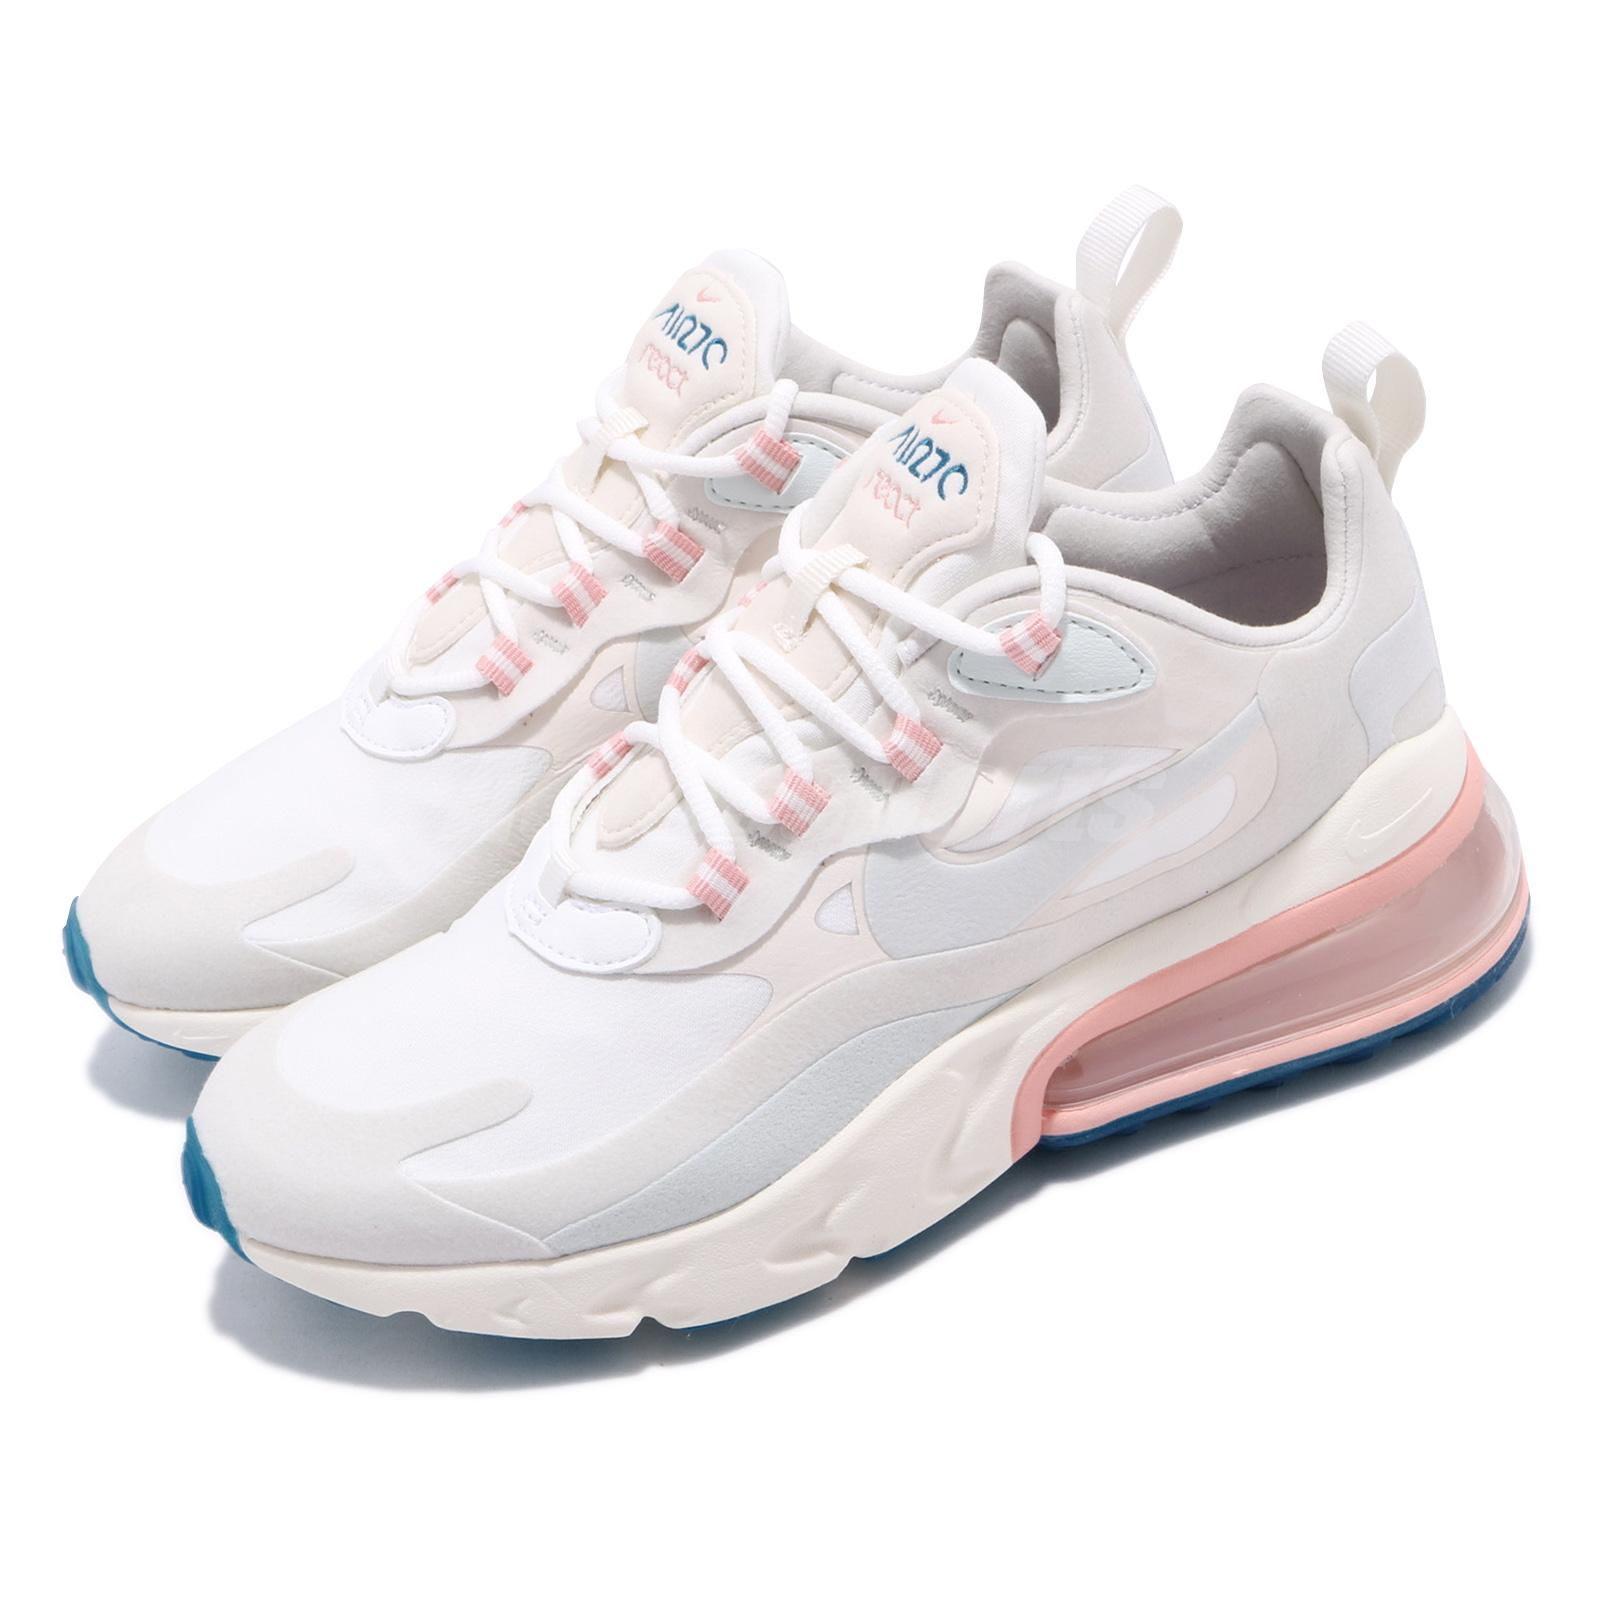 quality design 8b092 514ce Details about Nike Air Max 270 React Summit White Blue Pink Womens Running  Shoes AT6174-100